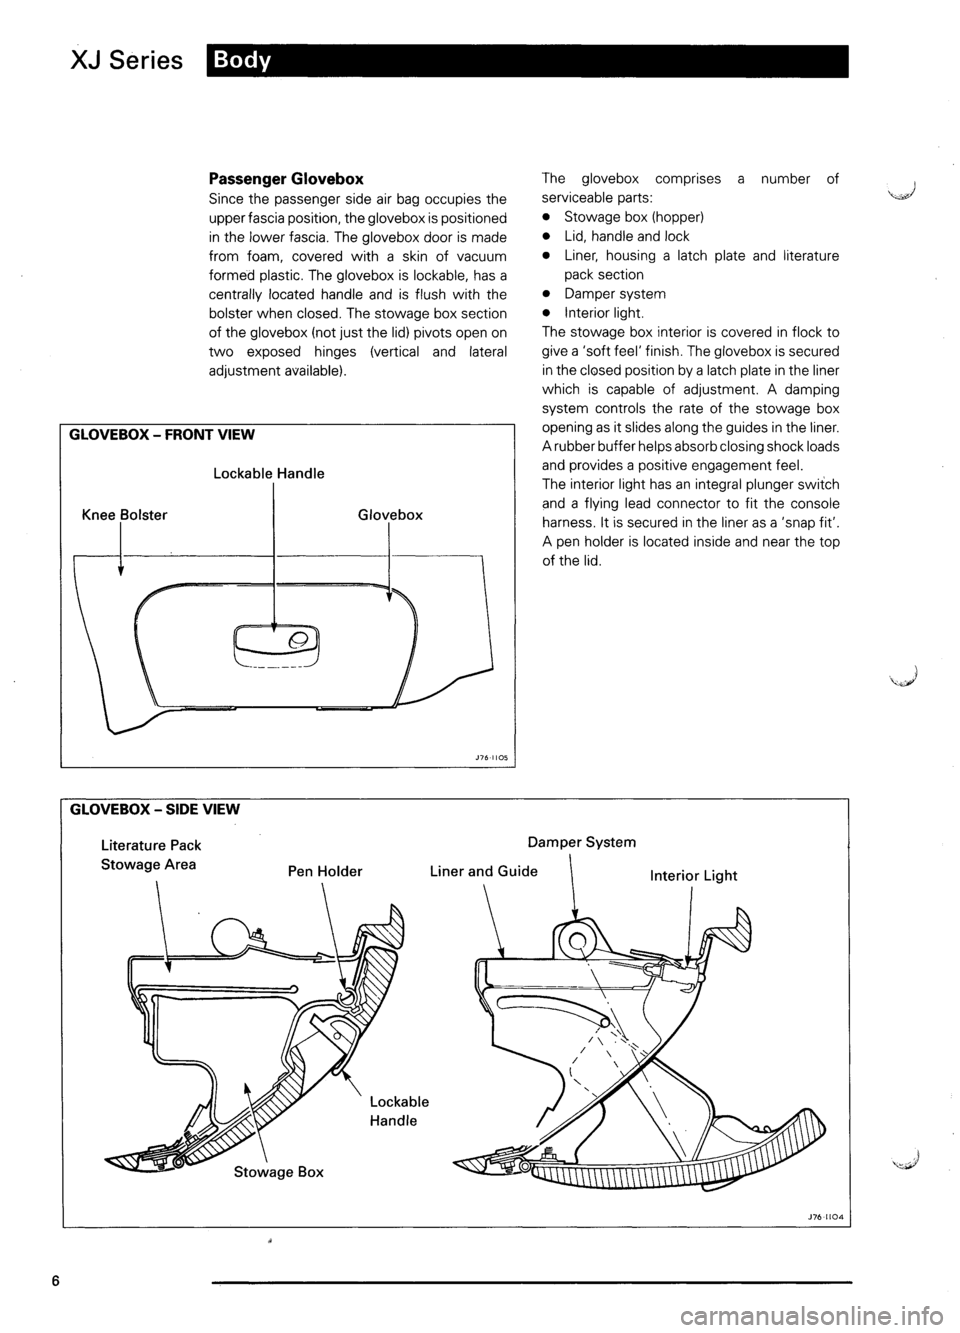 JAGUAR XJ6 1995 2.G Model Year Supplement Manual, Page 9